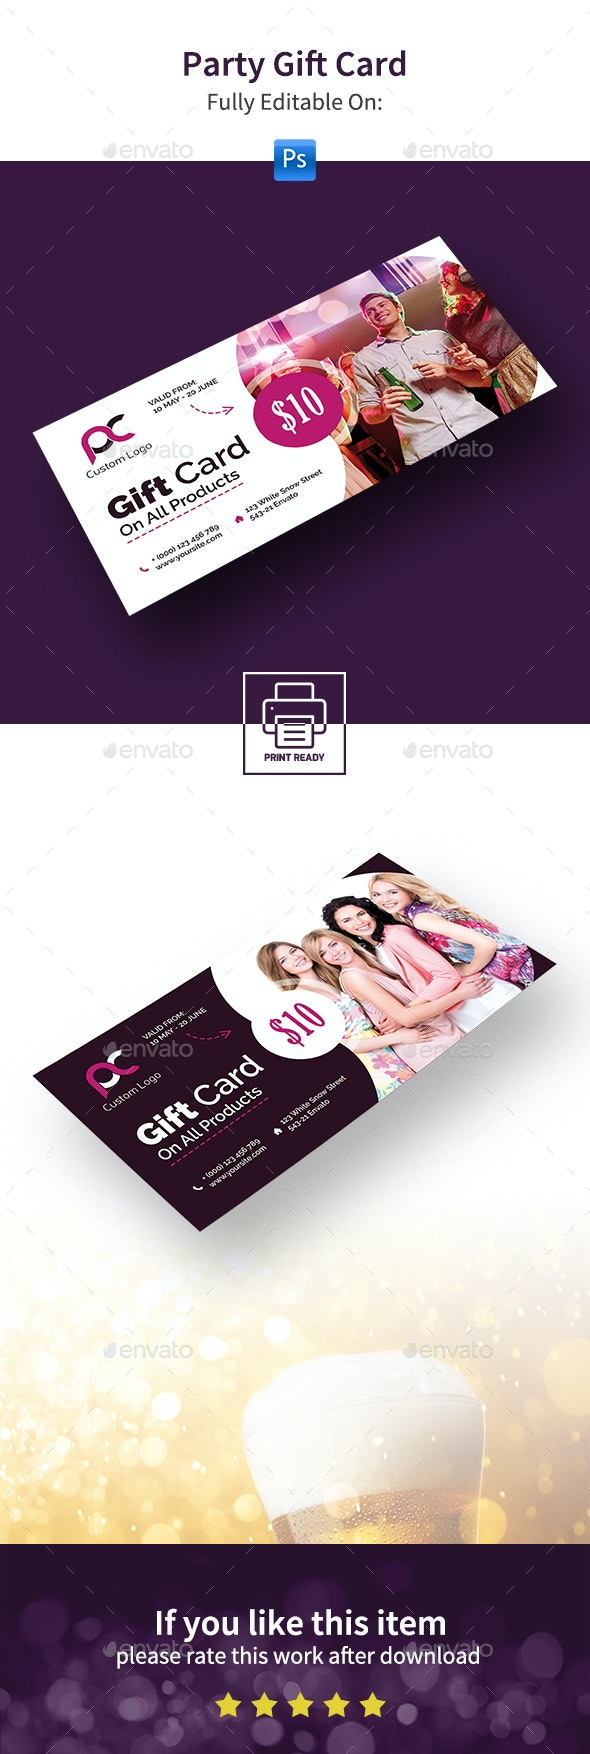 Party Gift Card - Cards & Invites Print Templates